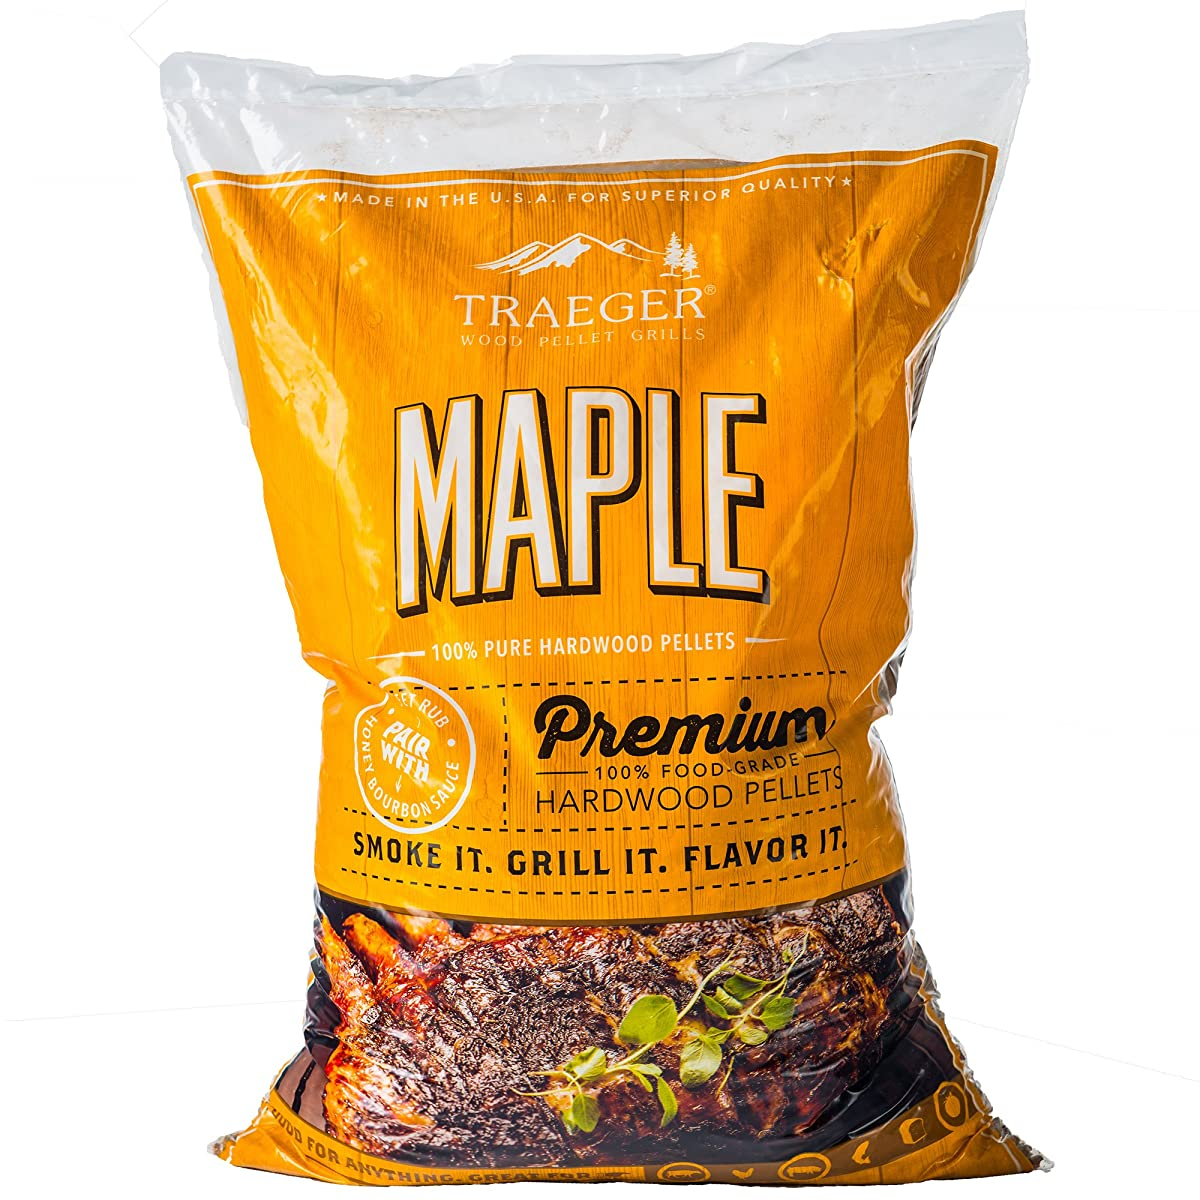 Traeger Grills Maple 100% All-Natural Hardwood Pellets - Grill, Smoke, Bake, Roast, Braise, and BBQ (20 lb. Bag)